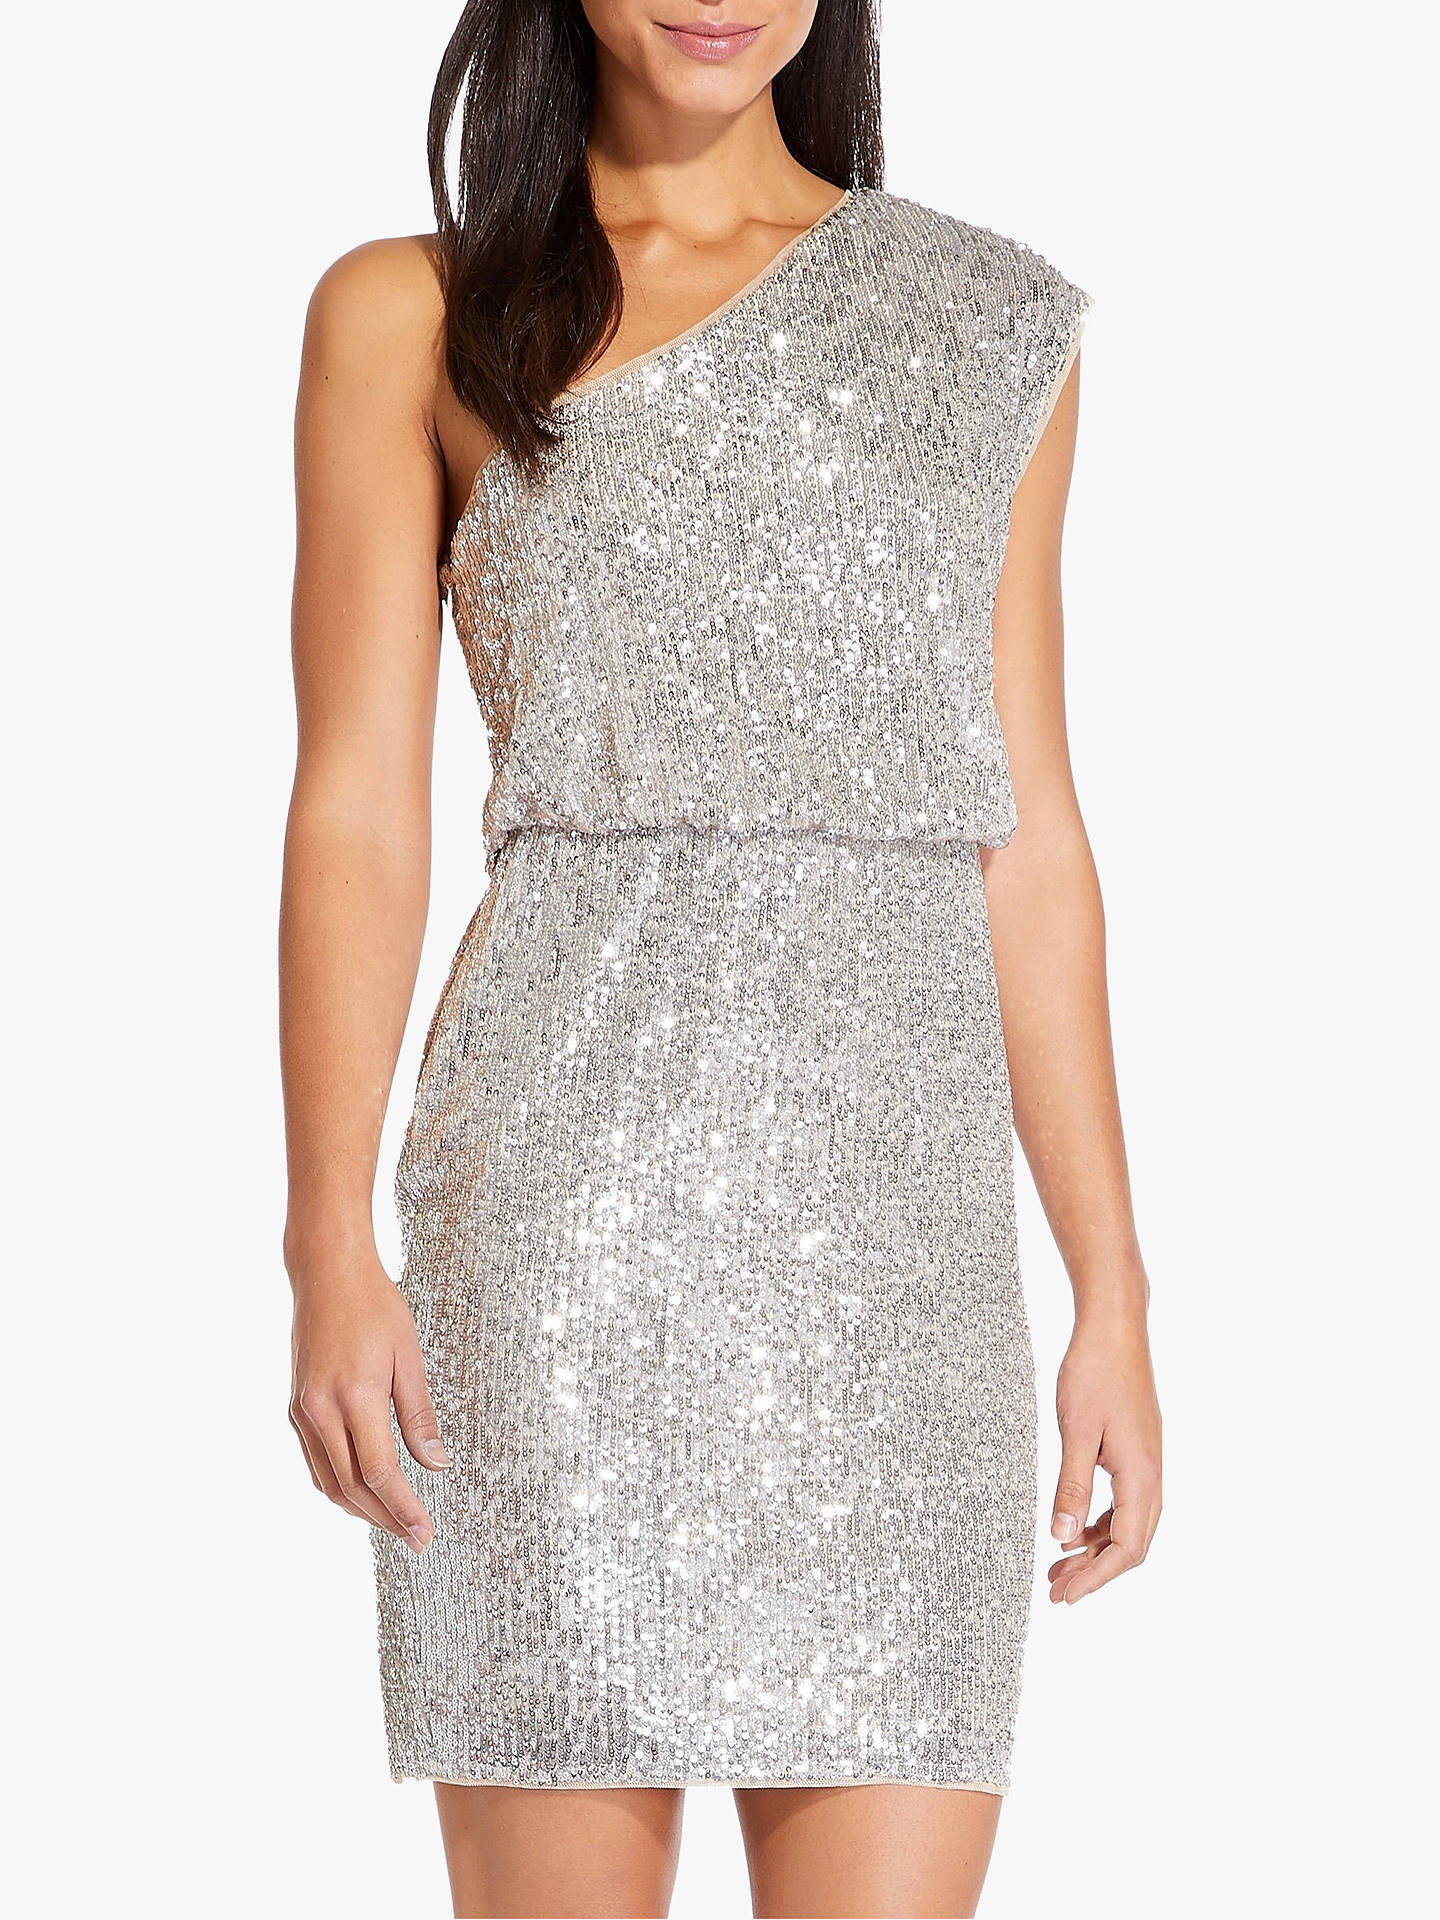 9ec953294a841 Buy Adrianna Papell One Shoulder Sequin Dress, Silver, 6 Online at  johnlewis.com ...